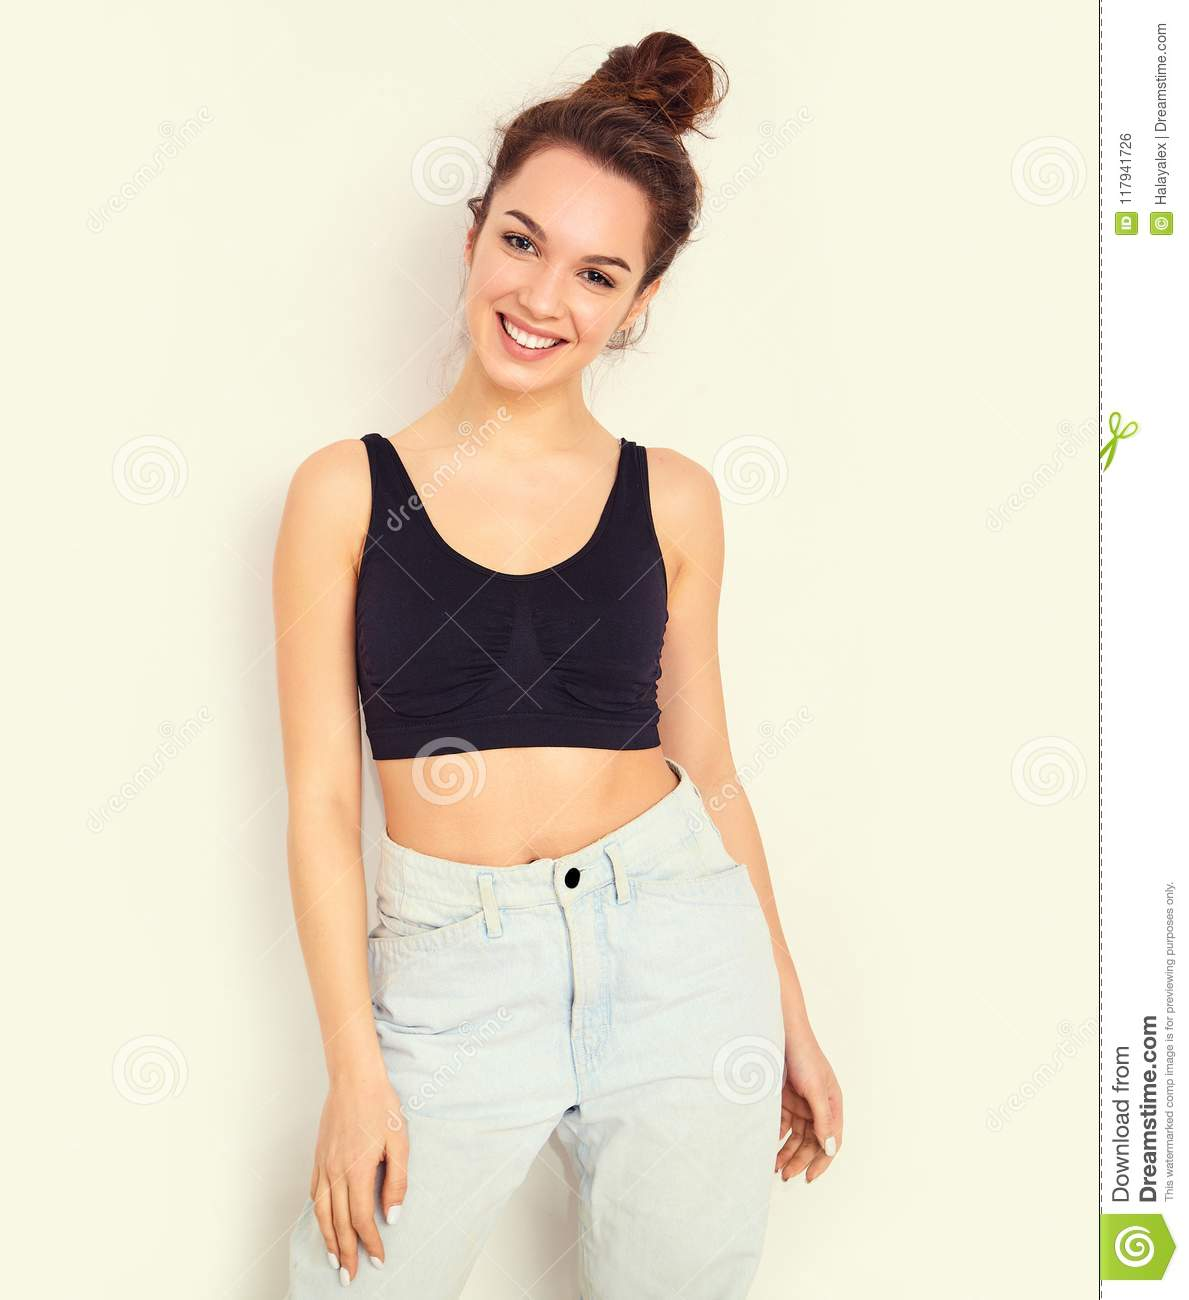 12e8de3722abe Portrait of young beautiful brunette woman girl model with nude makeup in  summer T-shirt top and jeans hipster clothes posing near wall. Going crazy